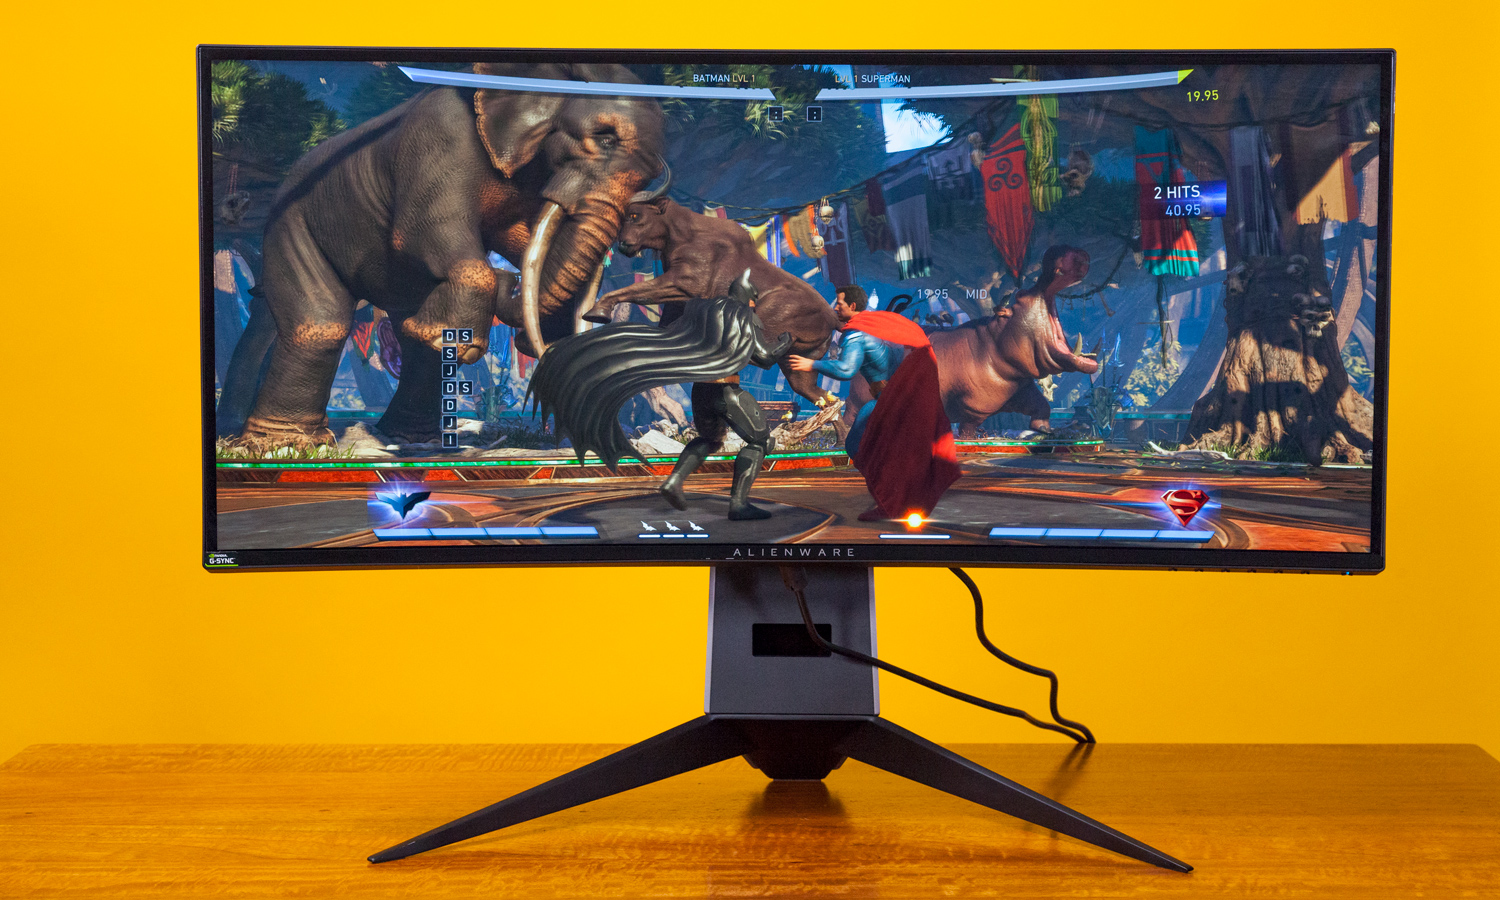 Dell Alienware AW3418W Curved monitor